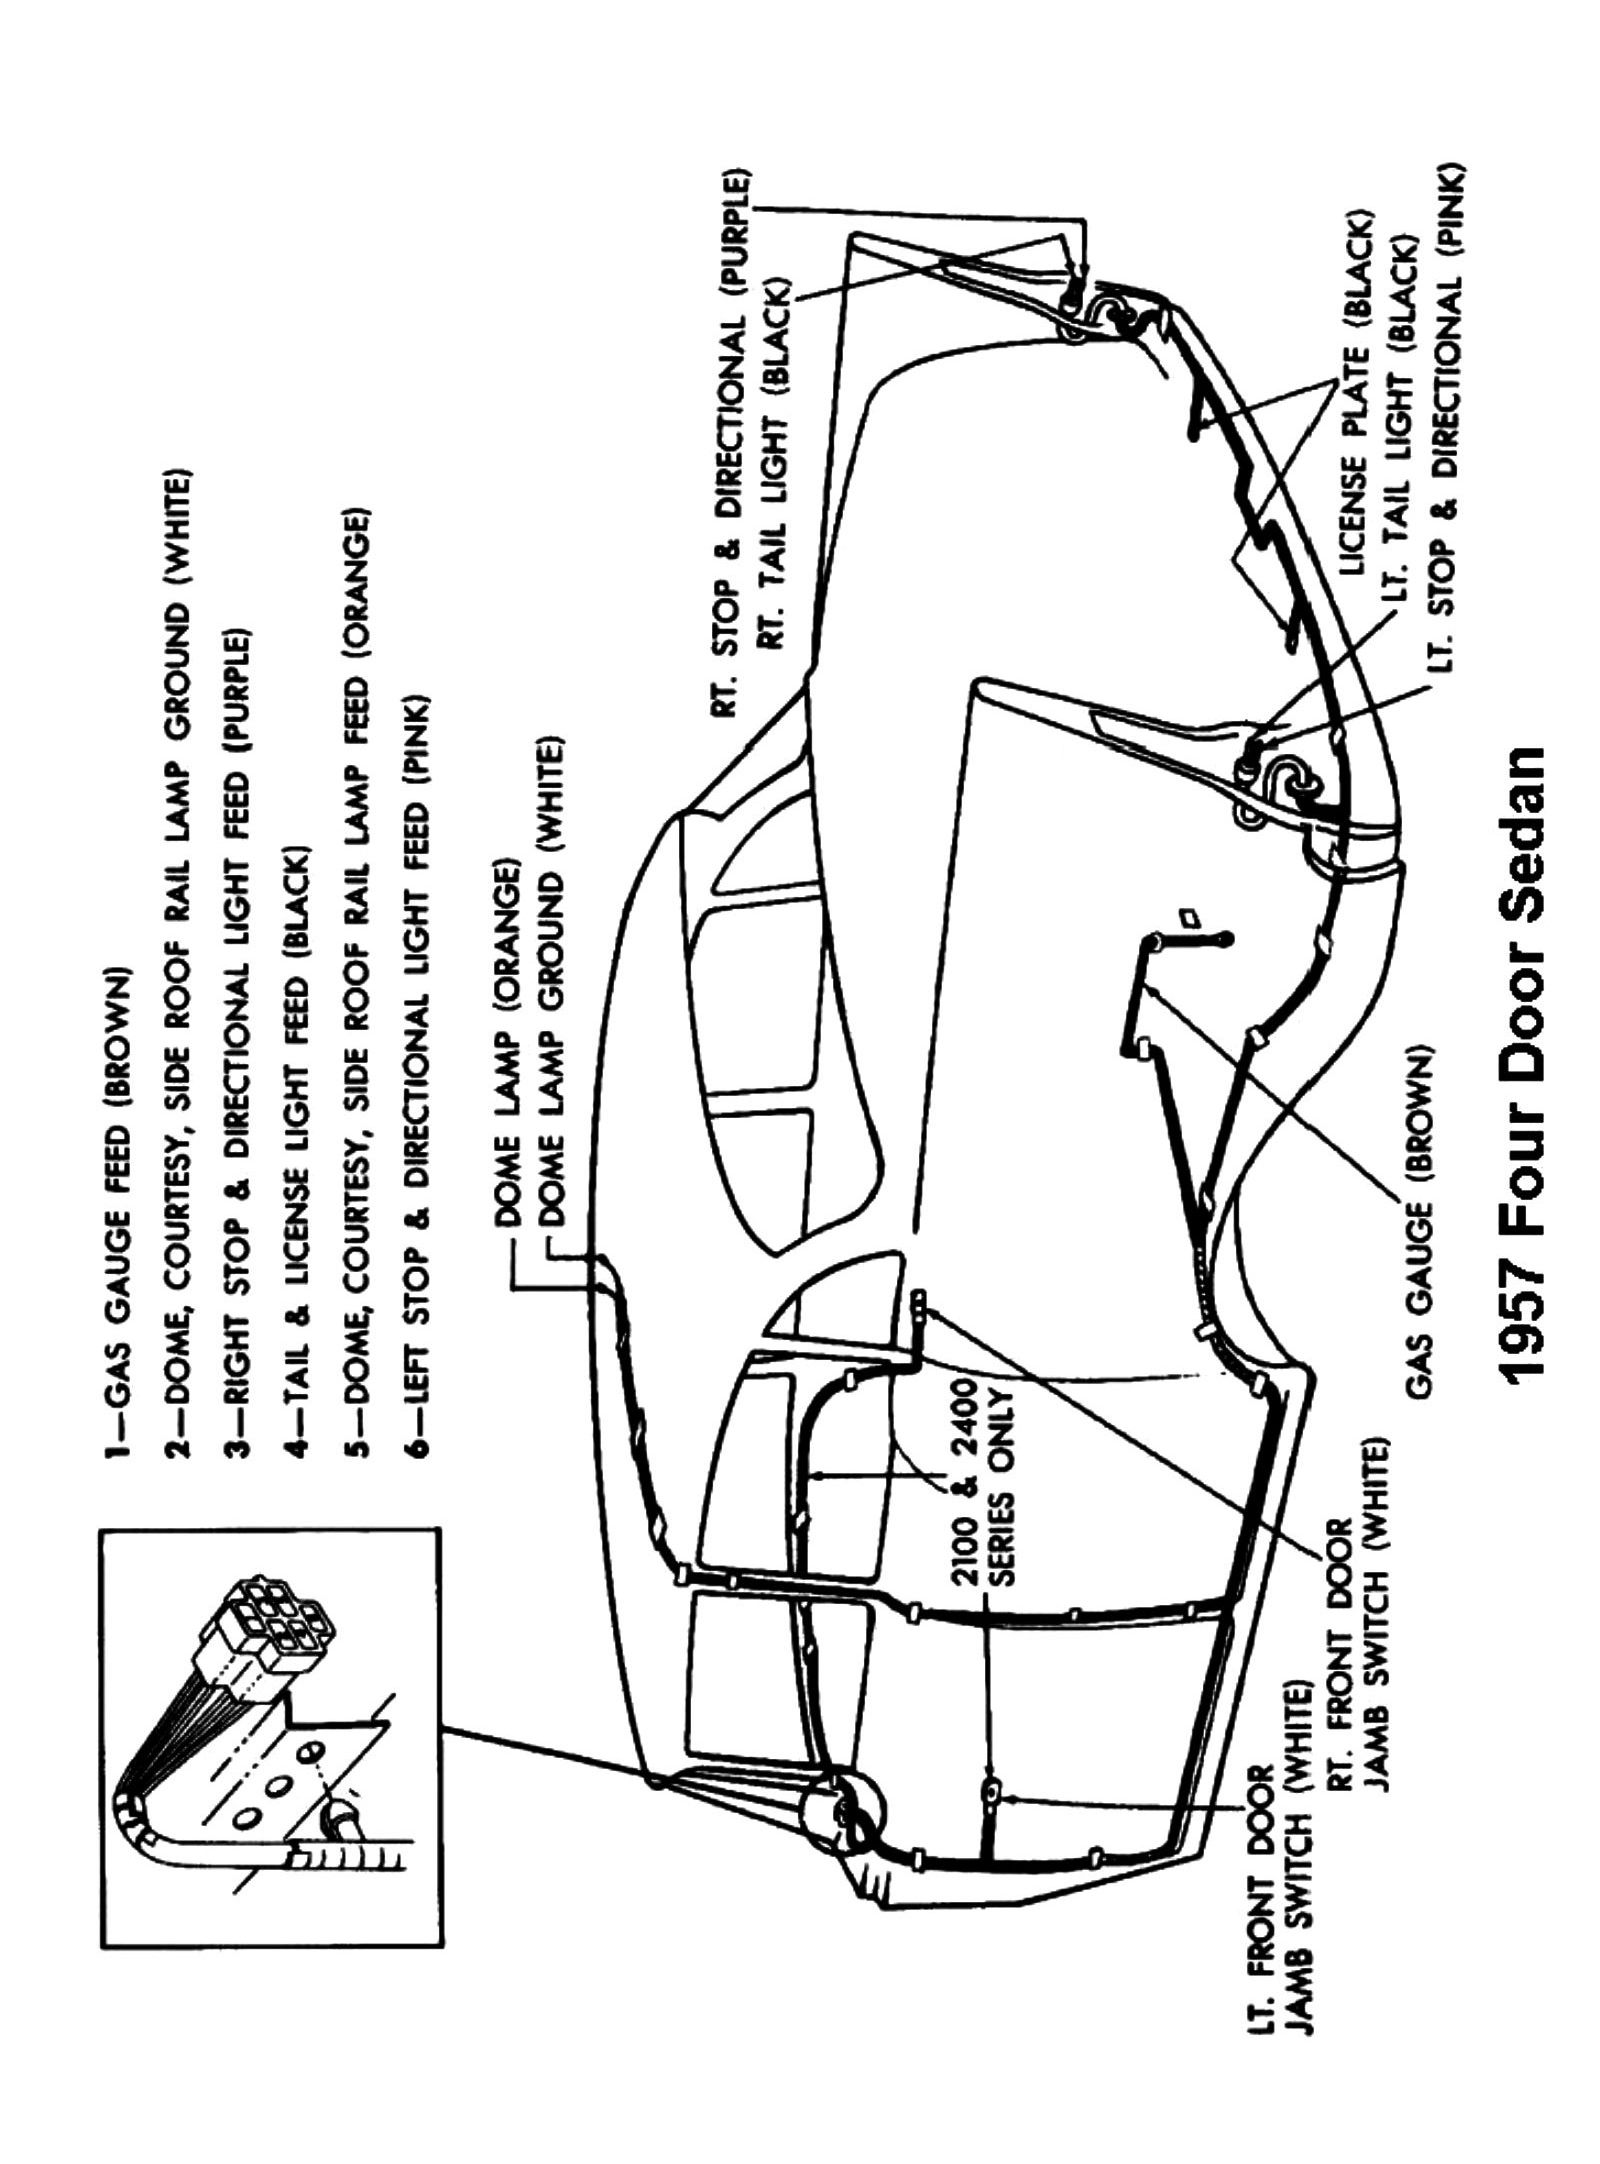 Wiring Harness For 1988 Chevy Truck